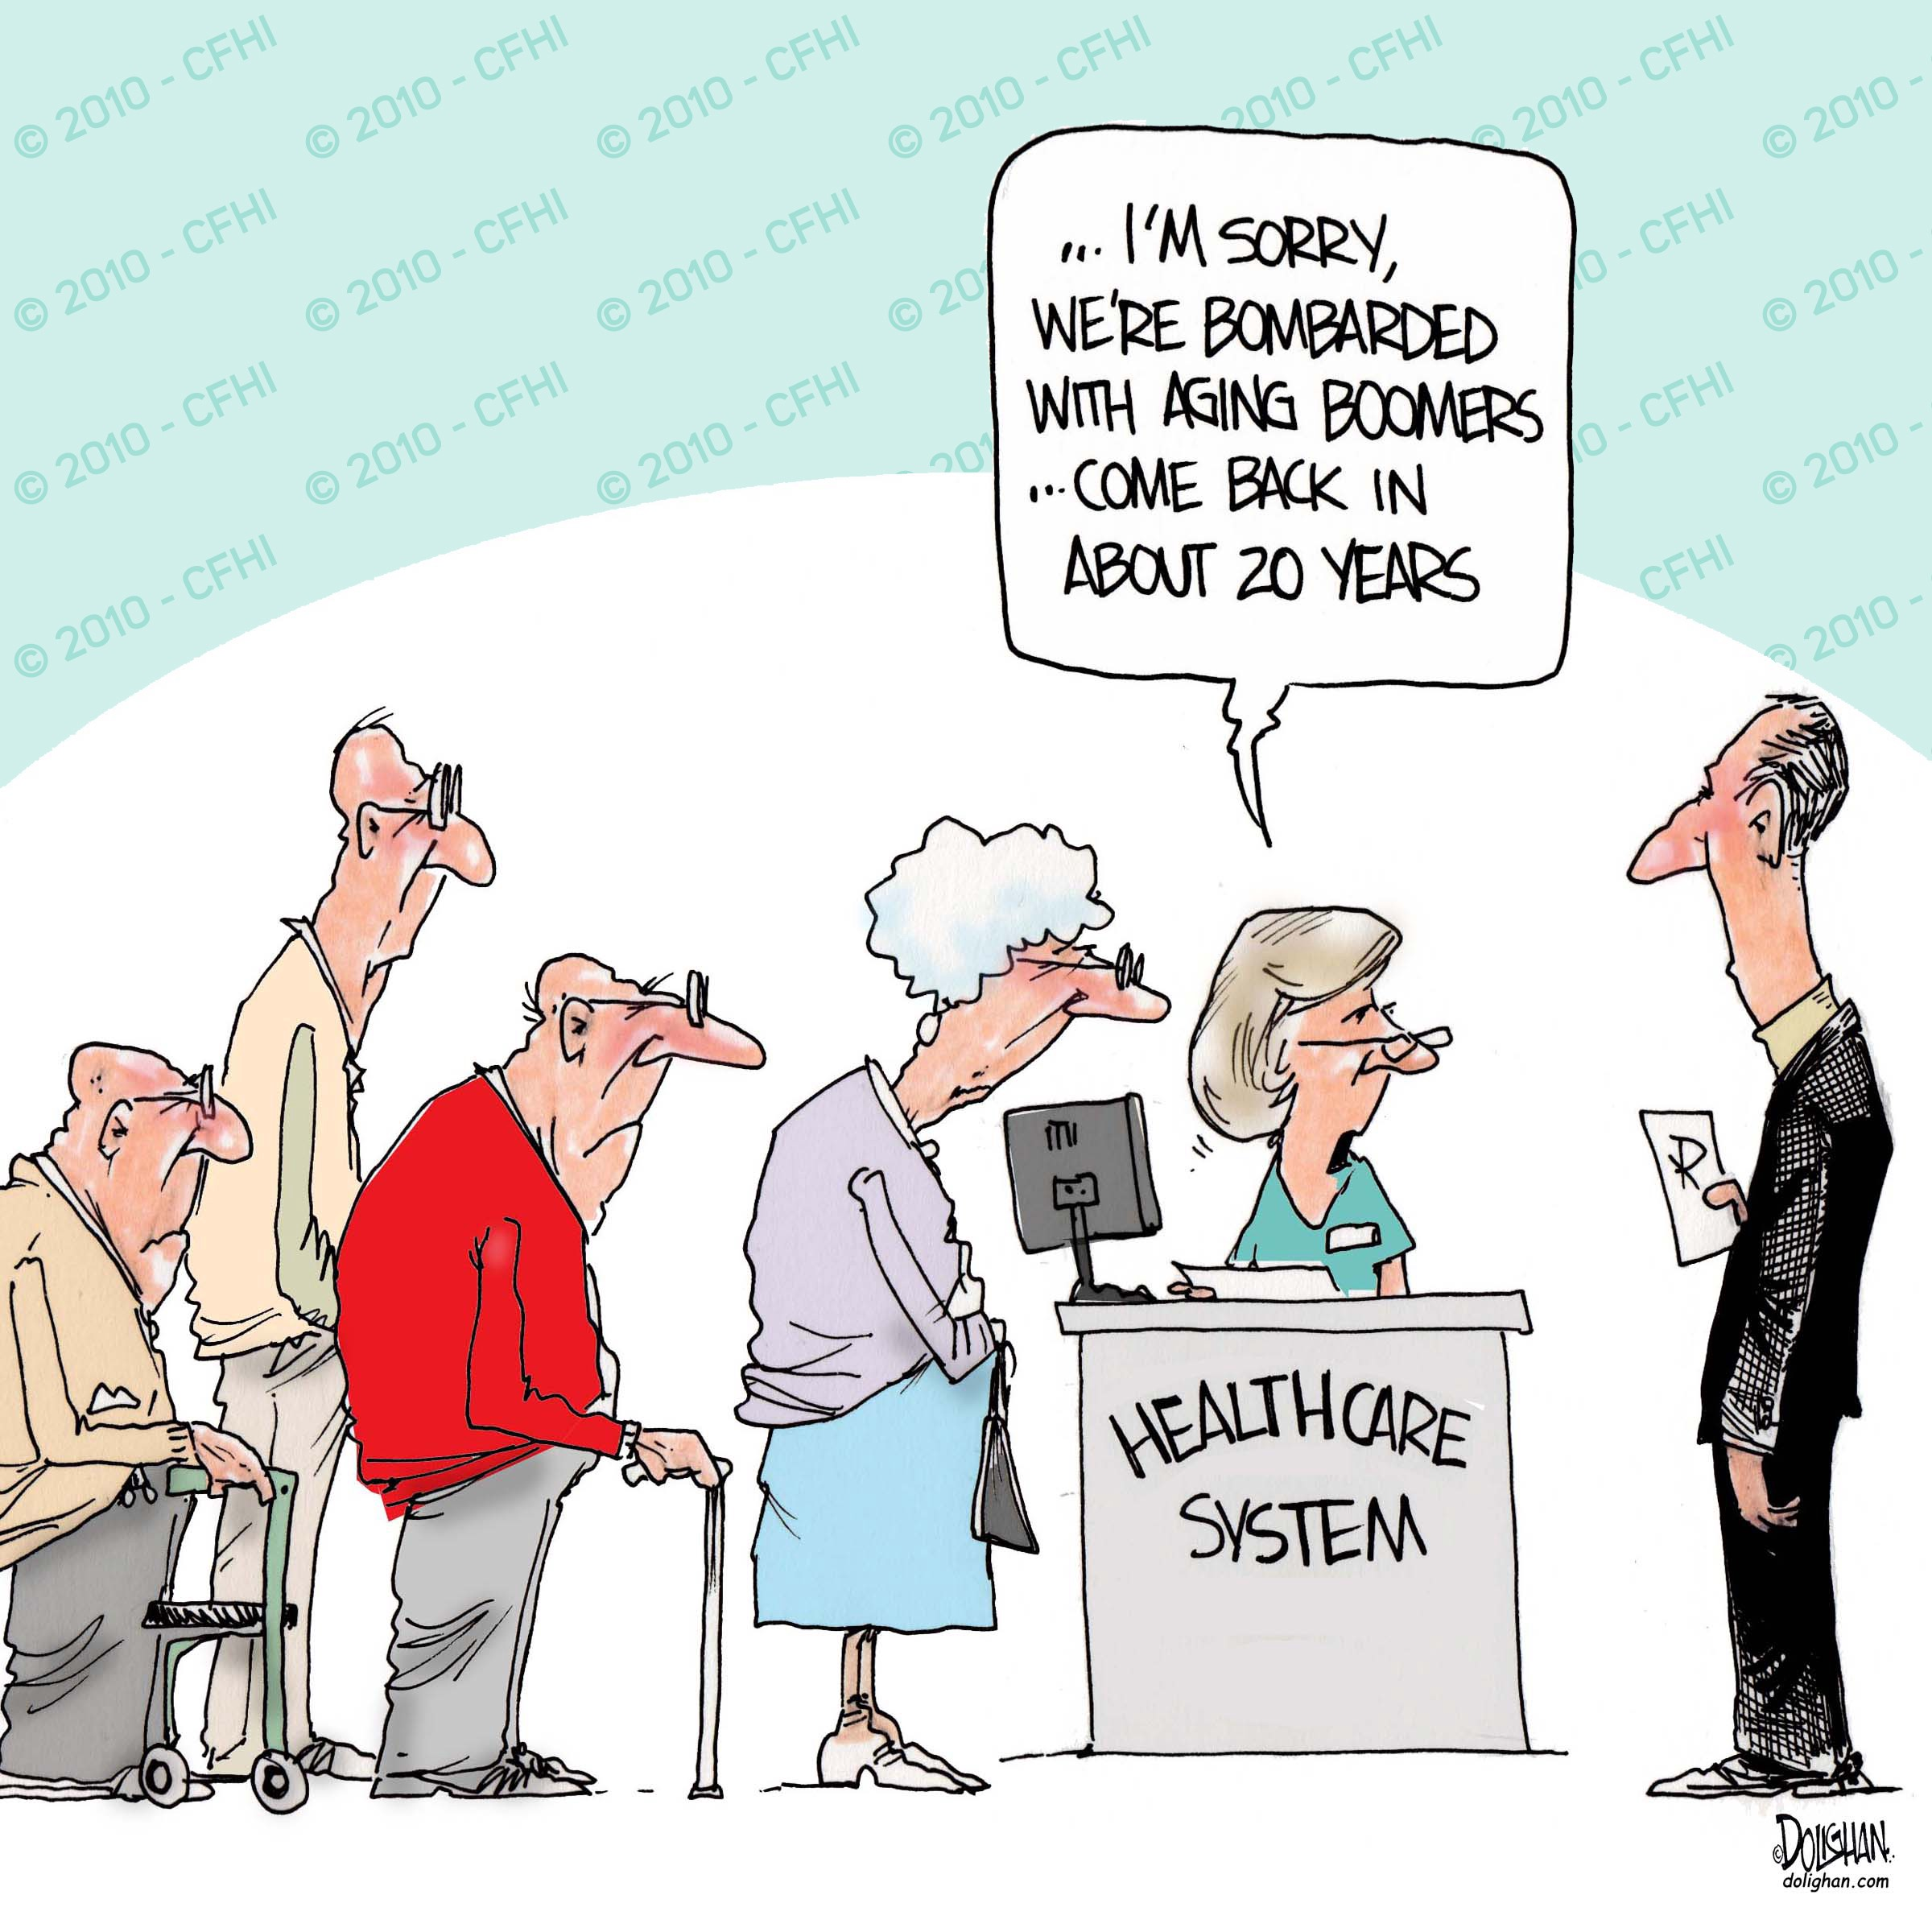 Dolighan comic piece commenting on the healthcare system and the aging population.